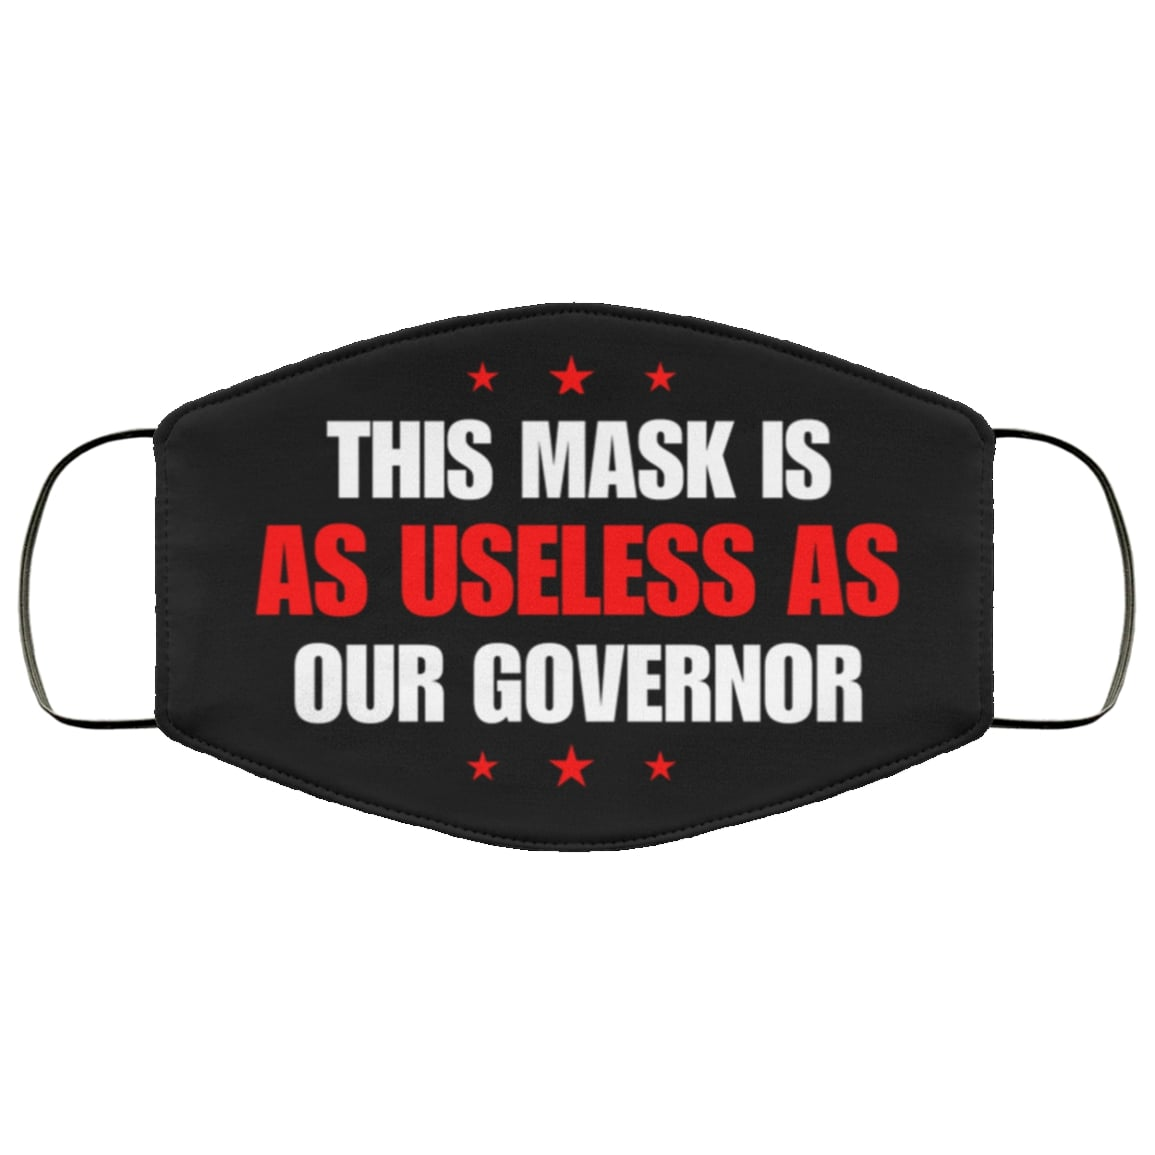 This mask is as useless as our governor full over printed face mask 2